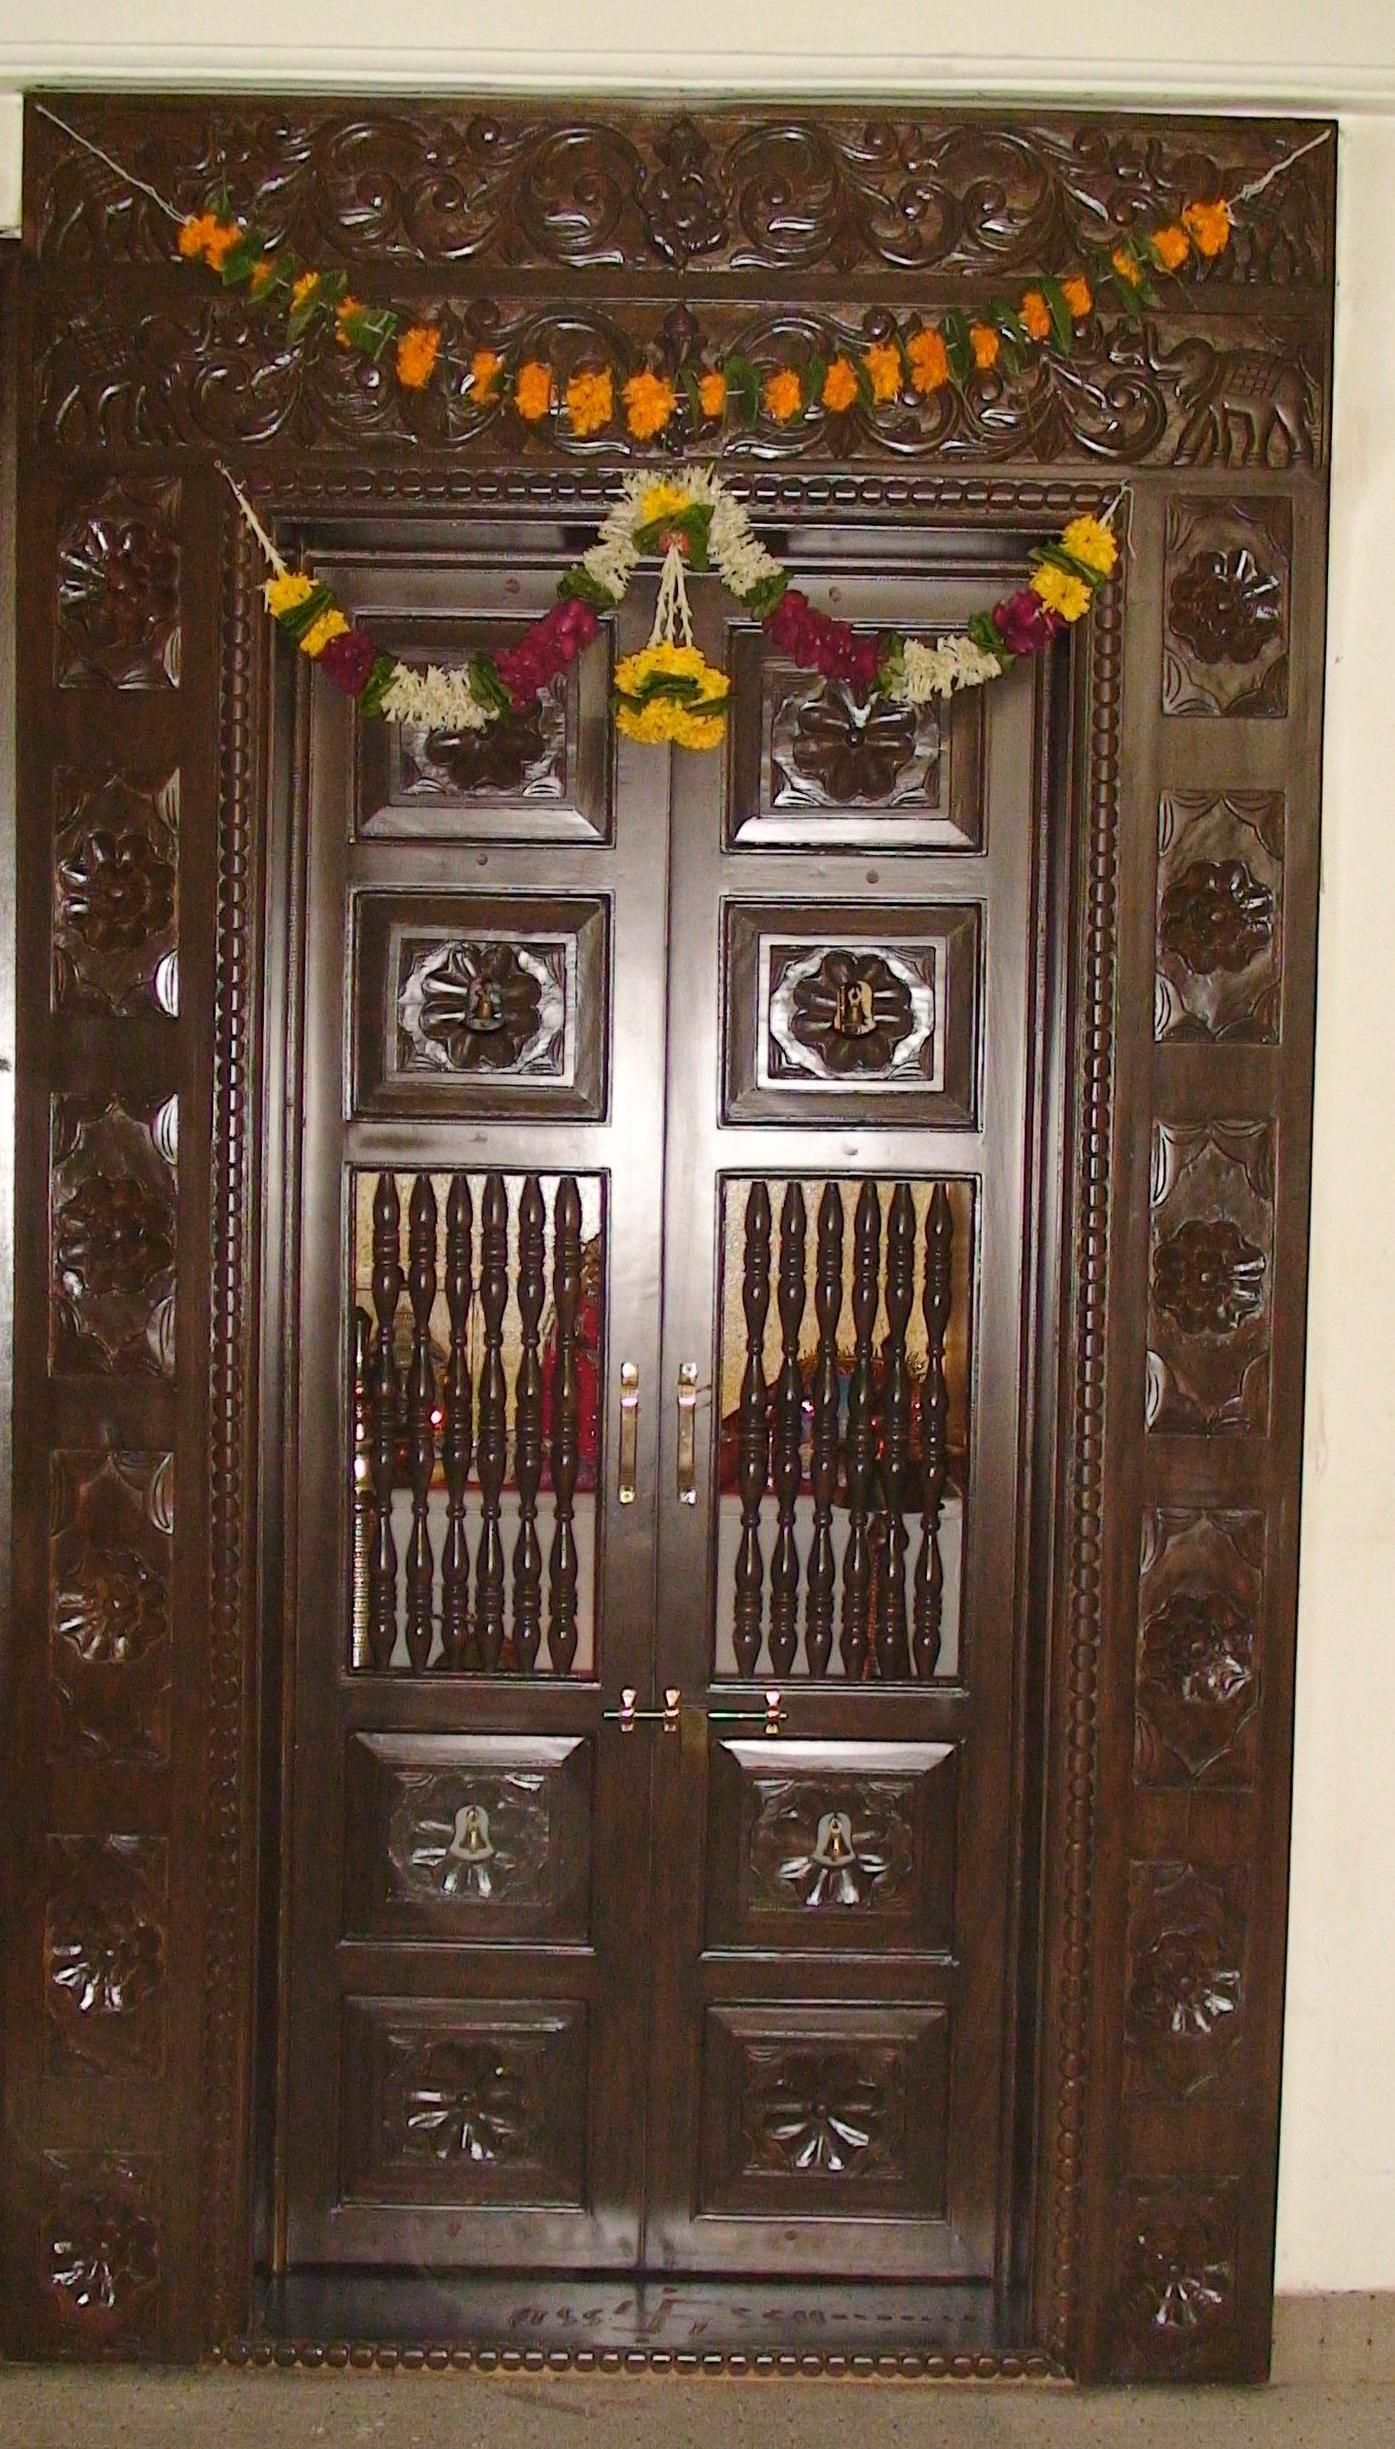 Pooja Room Door Designs Pooja Room: Pooja Door Designs Teak Wood